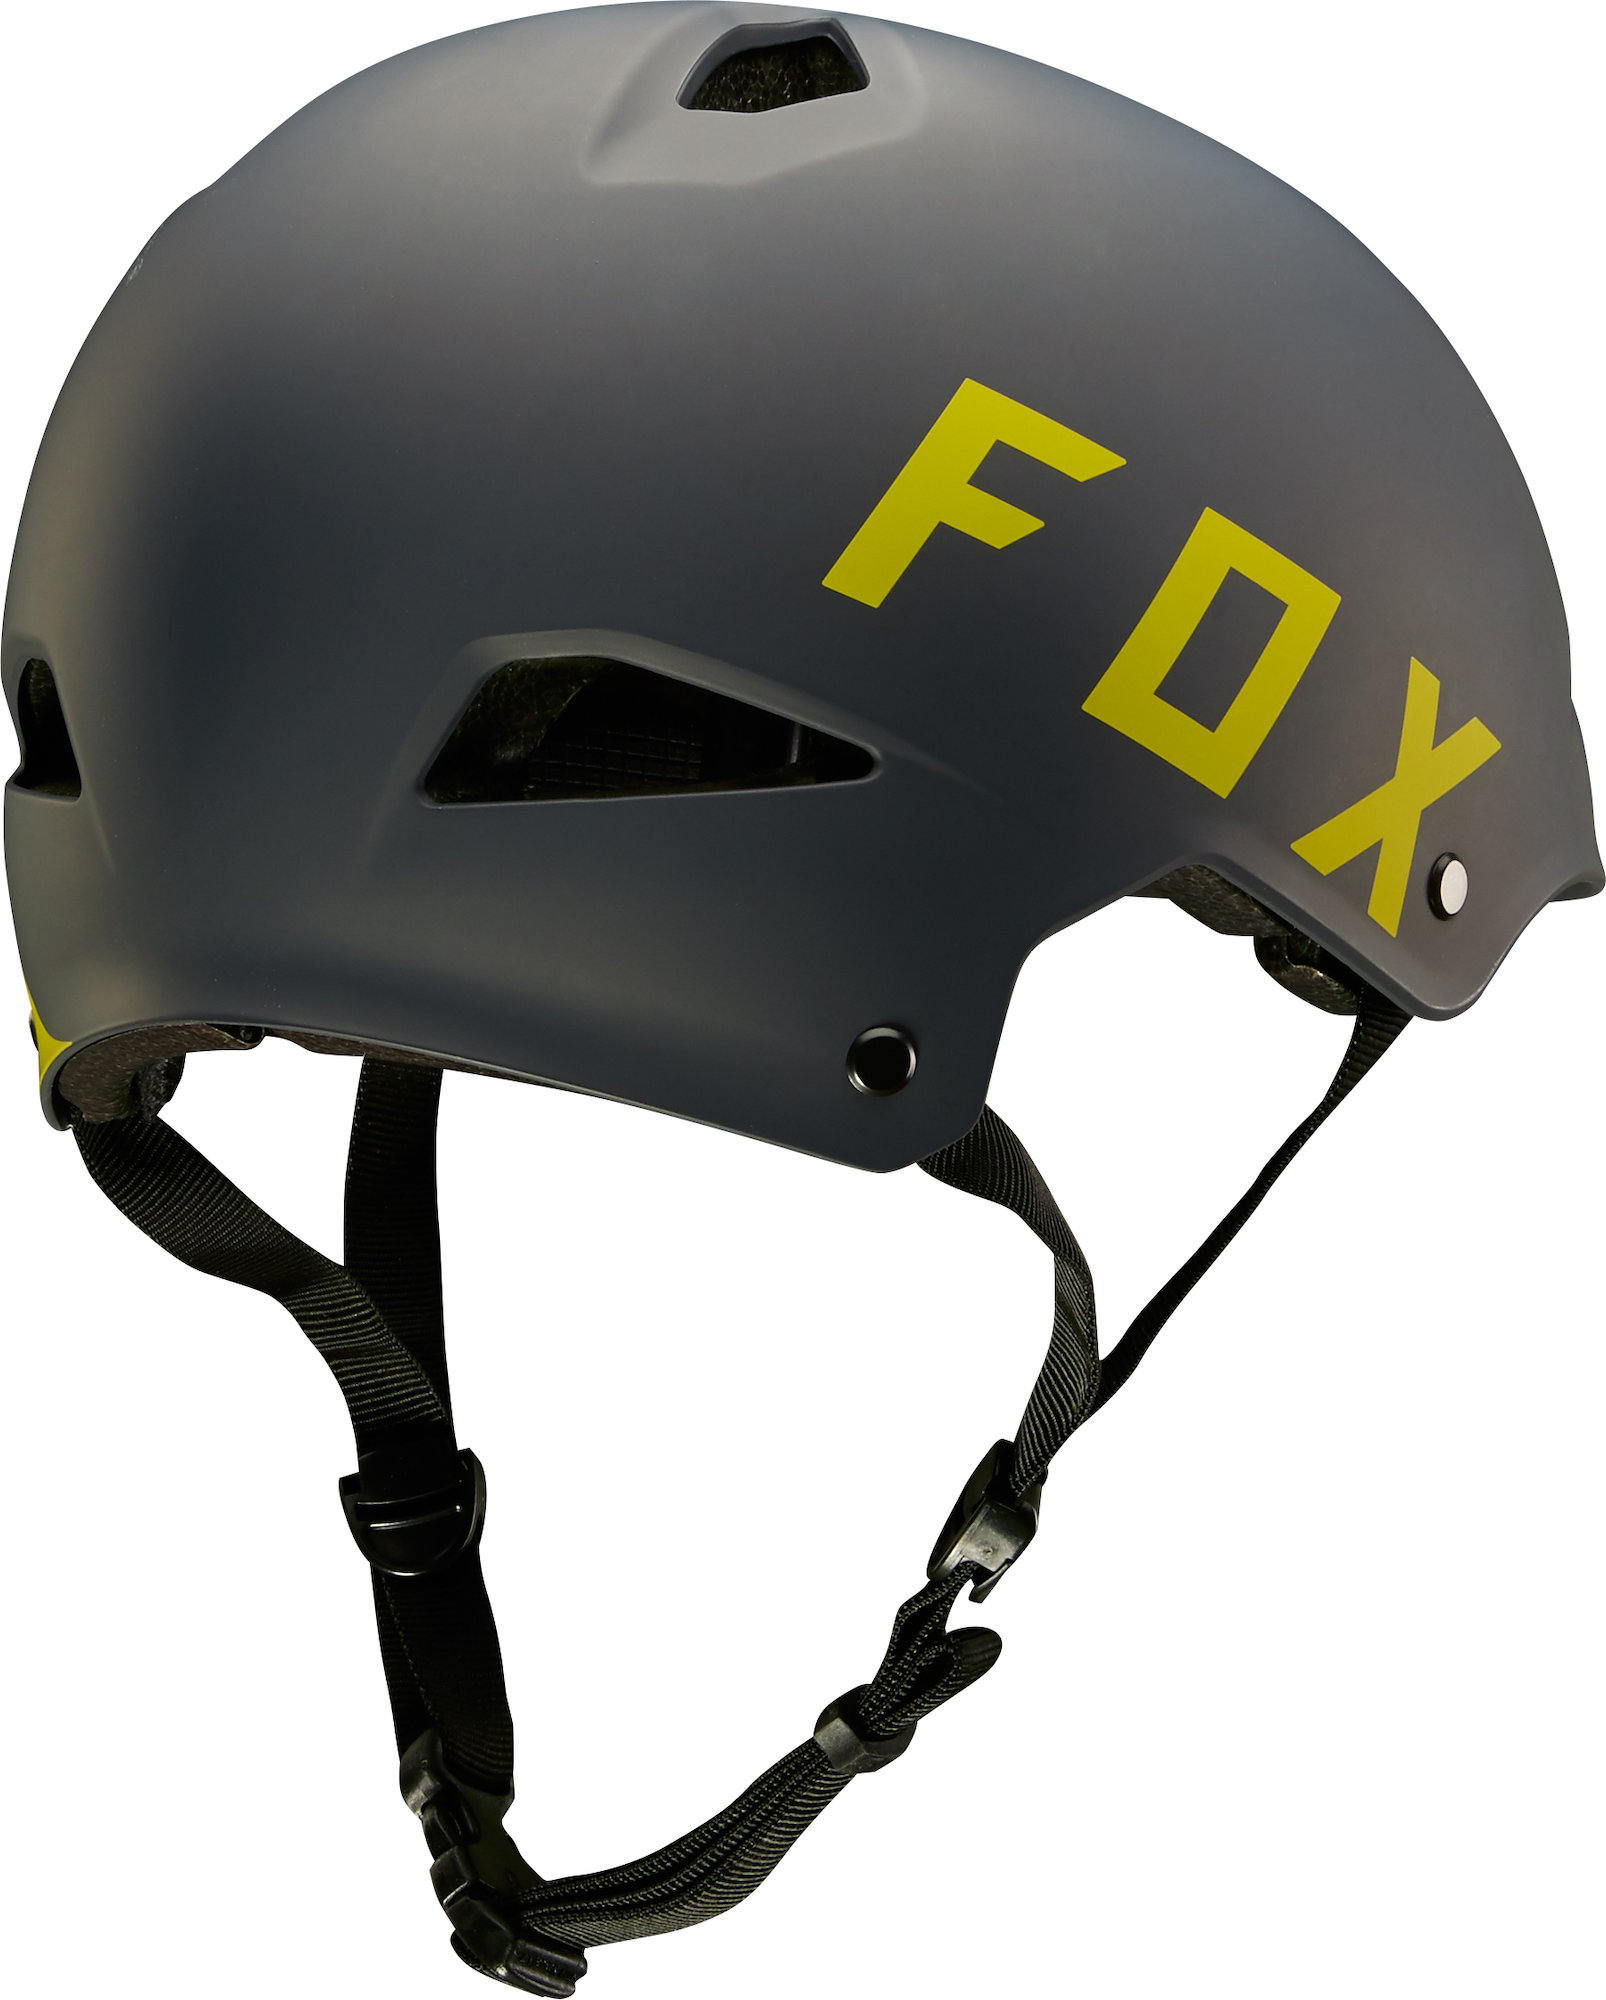 new appearance purchase cheap release date Fox Racing Flight Eyecon Hardshell Helmet - Encina, Clayton, and ...